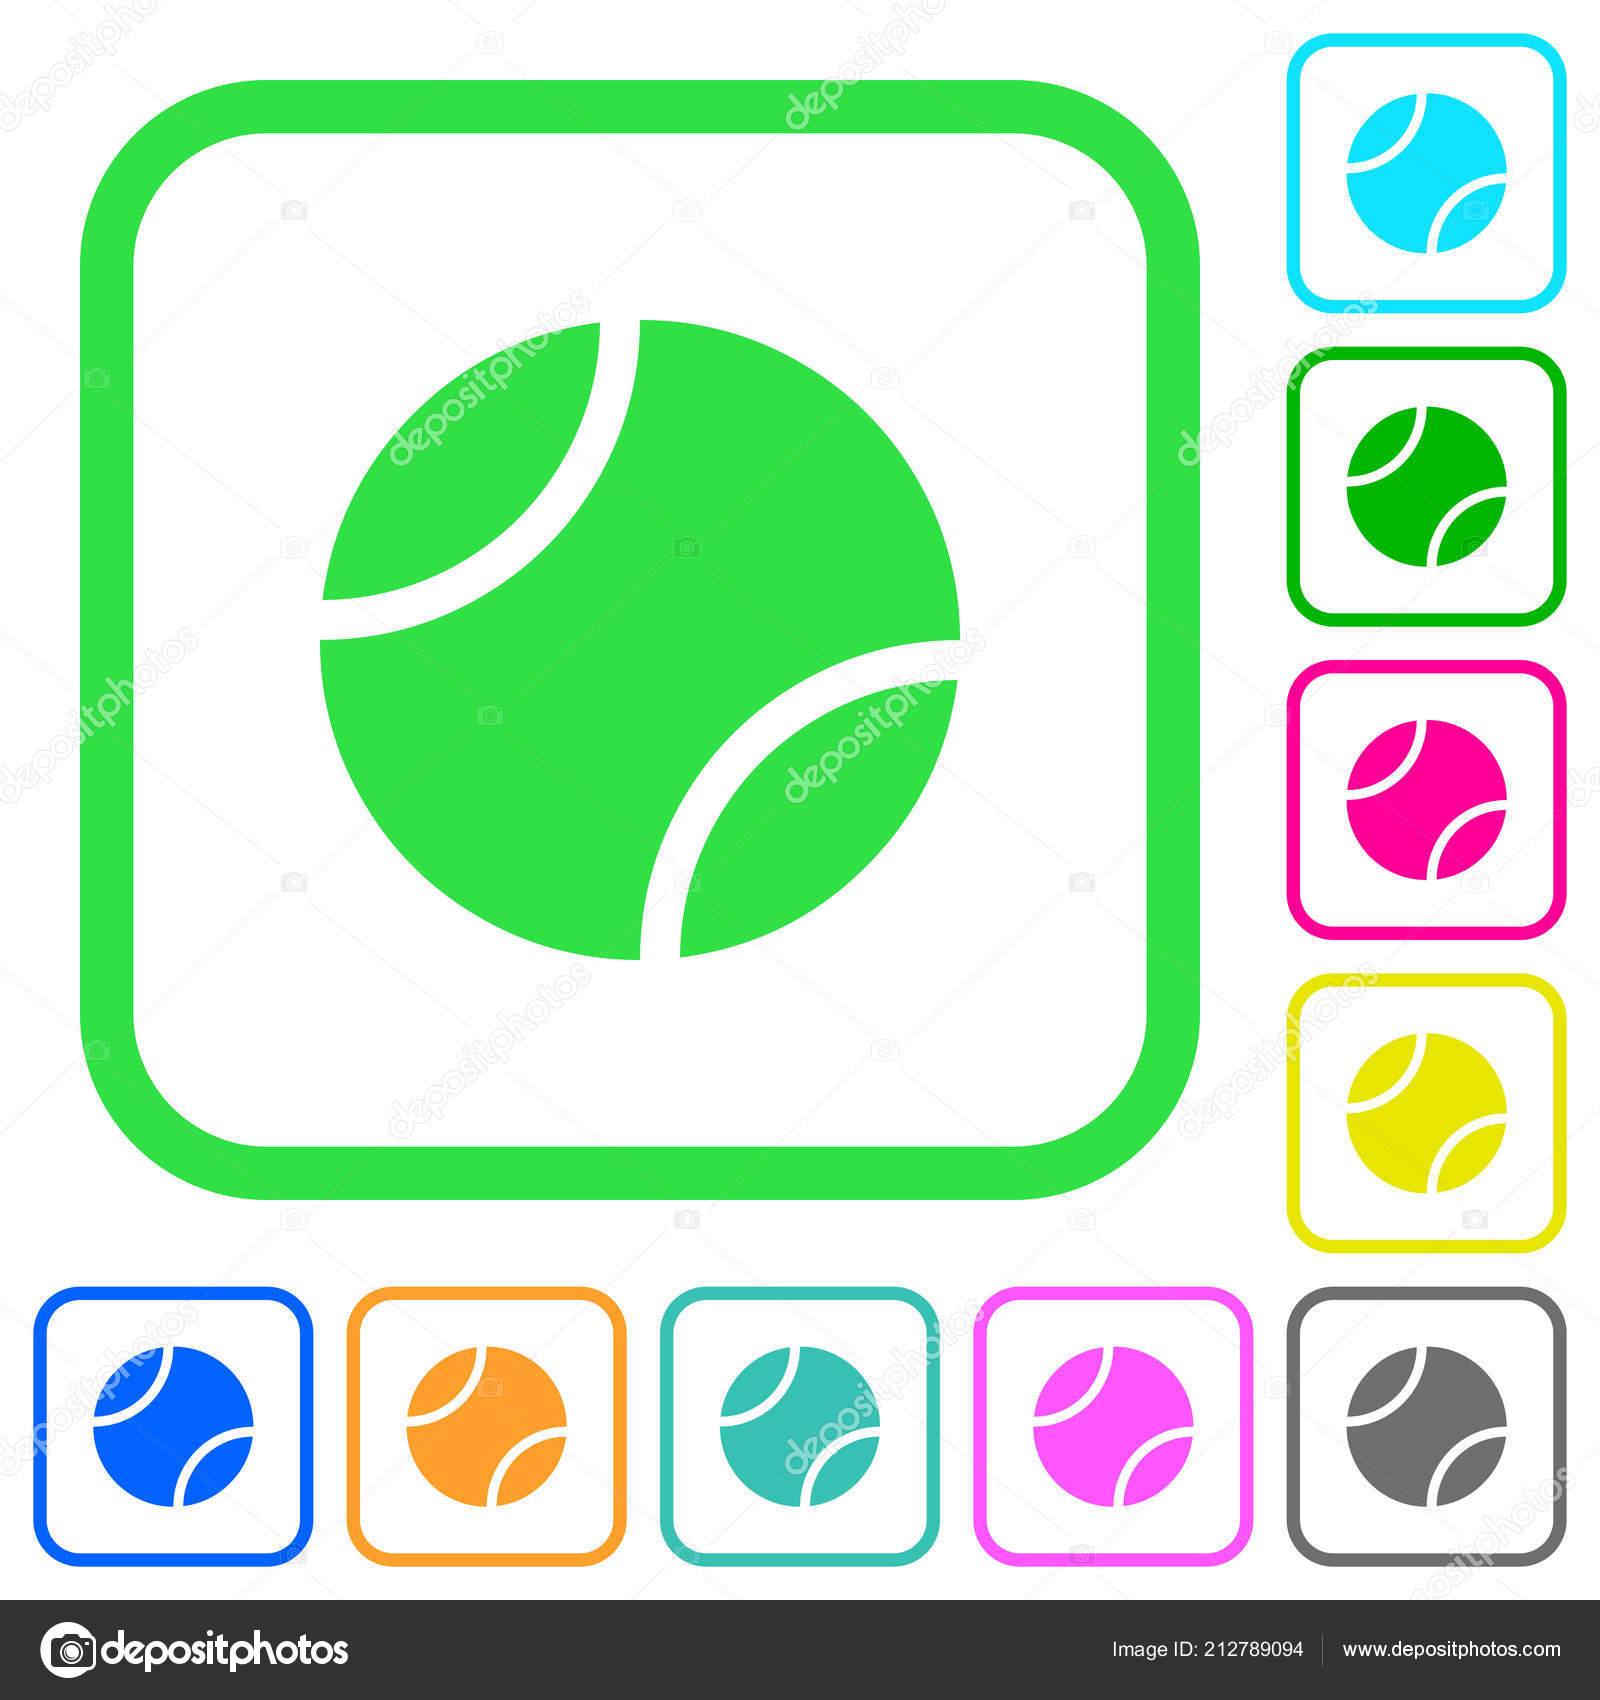 Tennis Ball Vivid Colored Flat Icons Curved Borders White Background